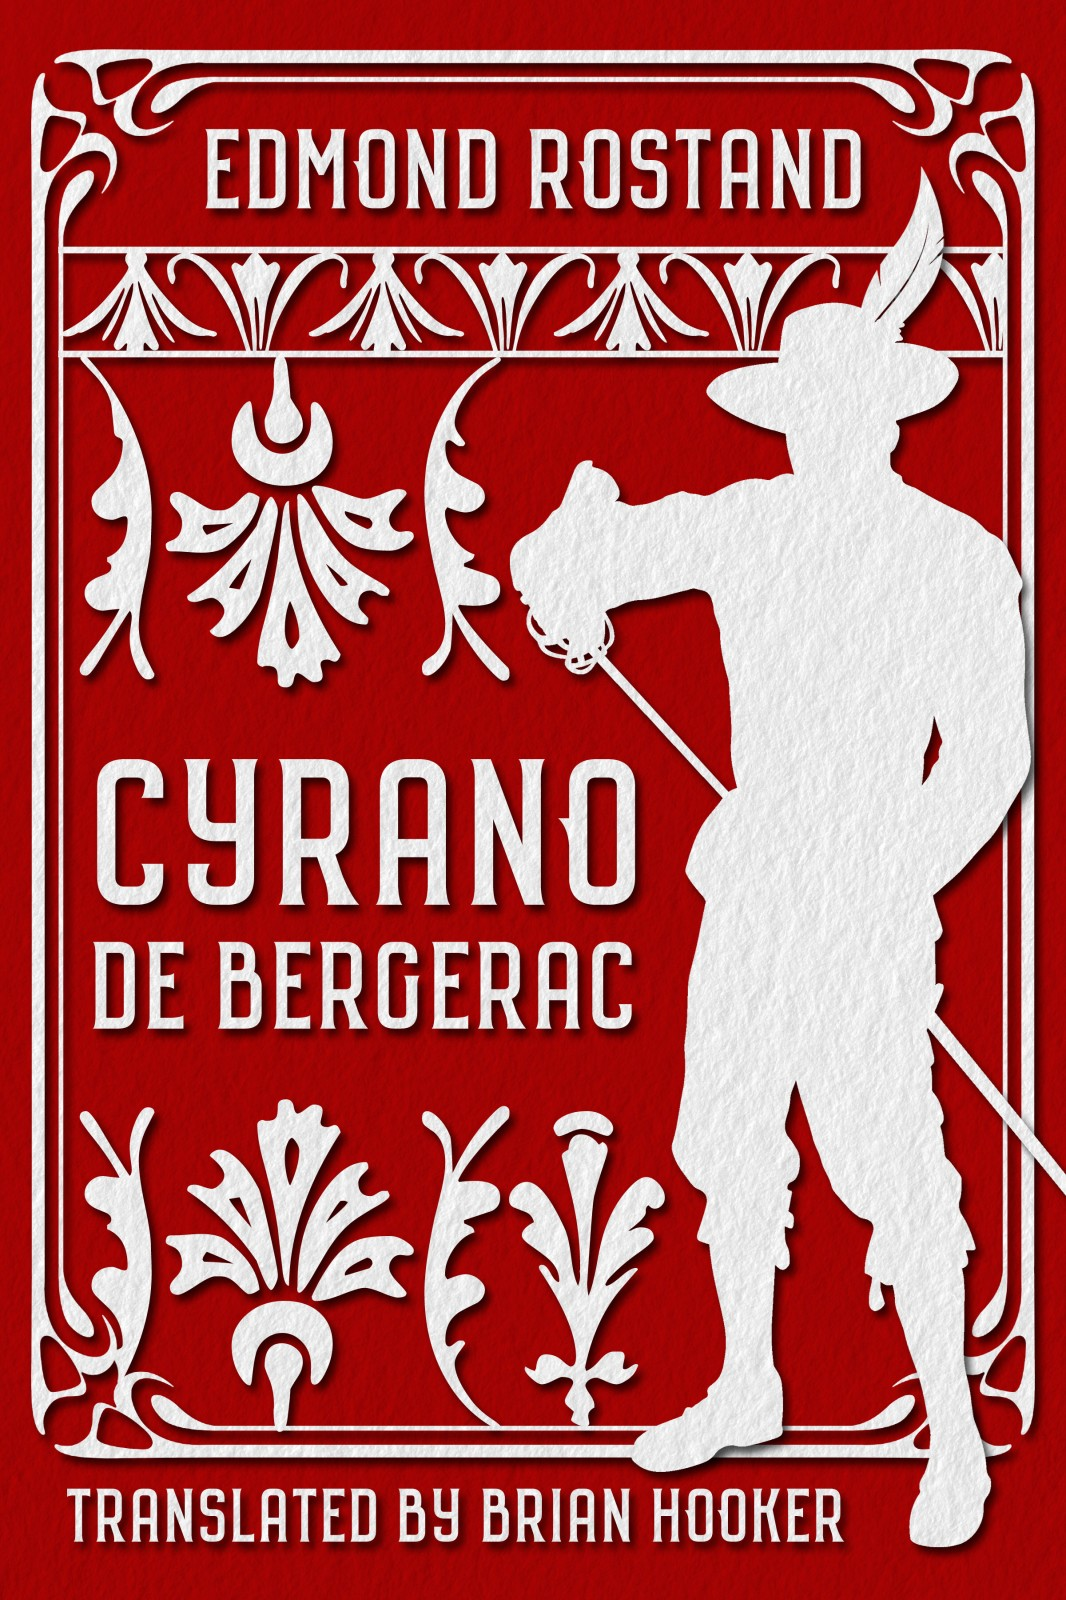 Cyrano de Bergerac, by Edmond Rostand, Translated by Brian Hooker